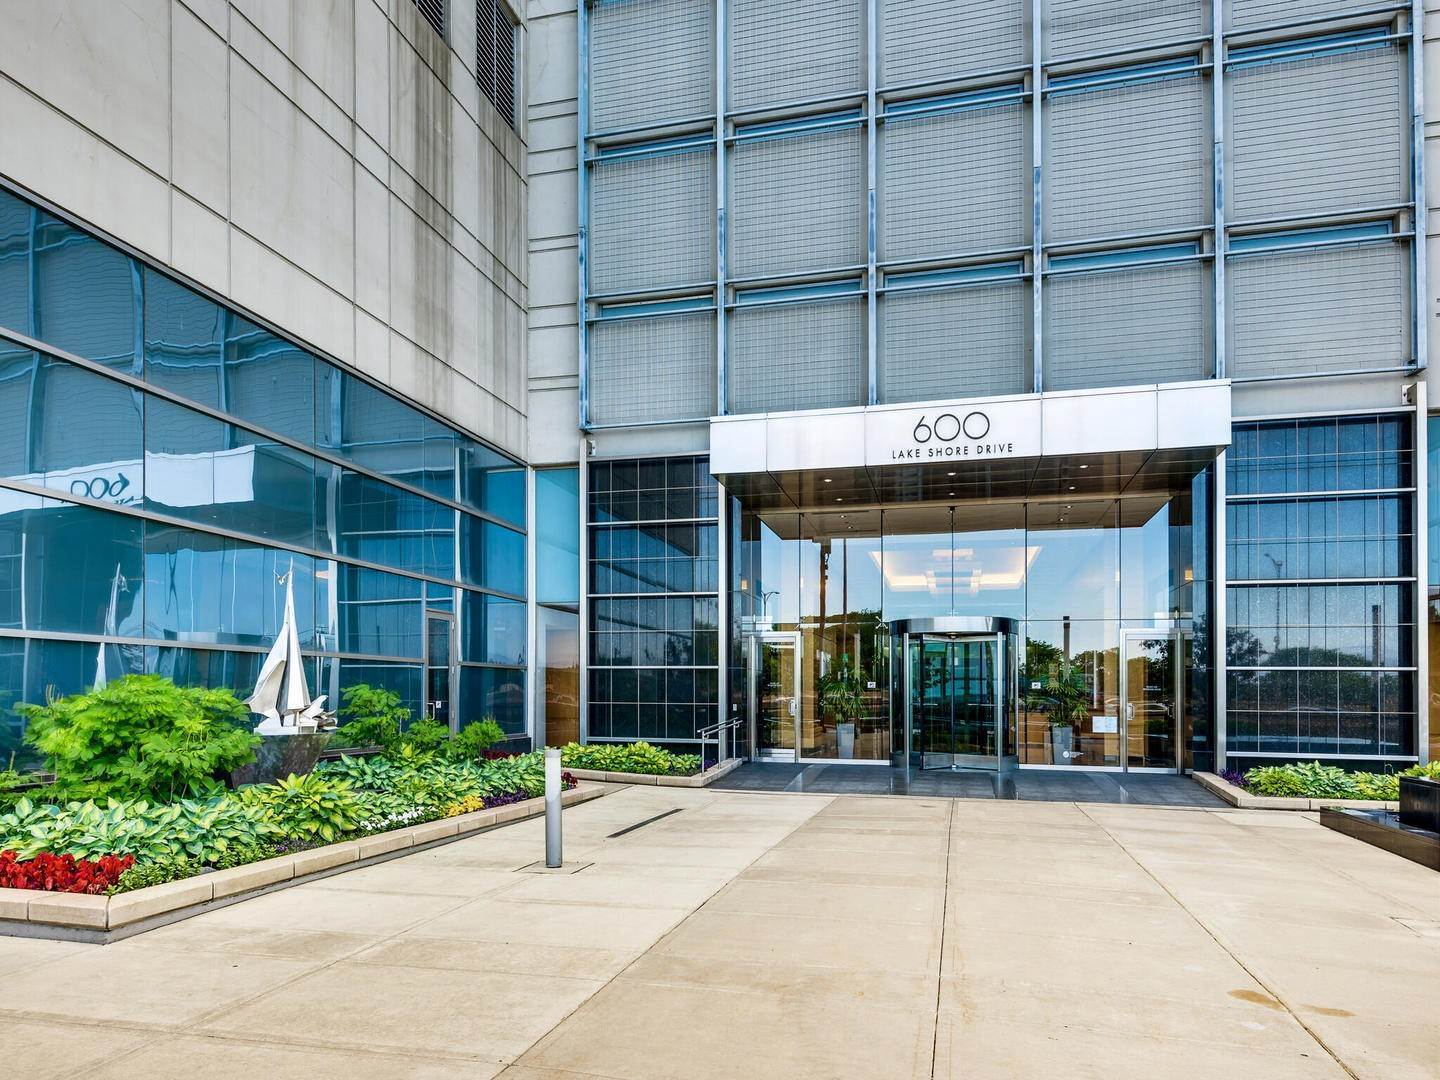 Residential Lease at 600 N Lake Shore Drive Chicago, Illinois 60611 United States